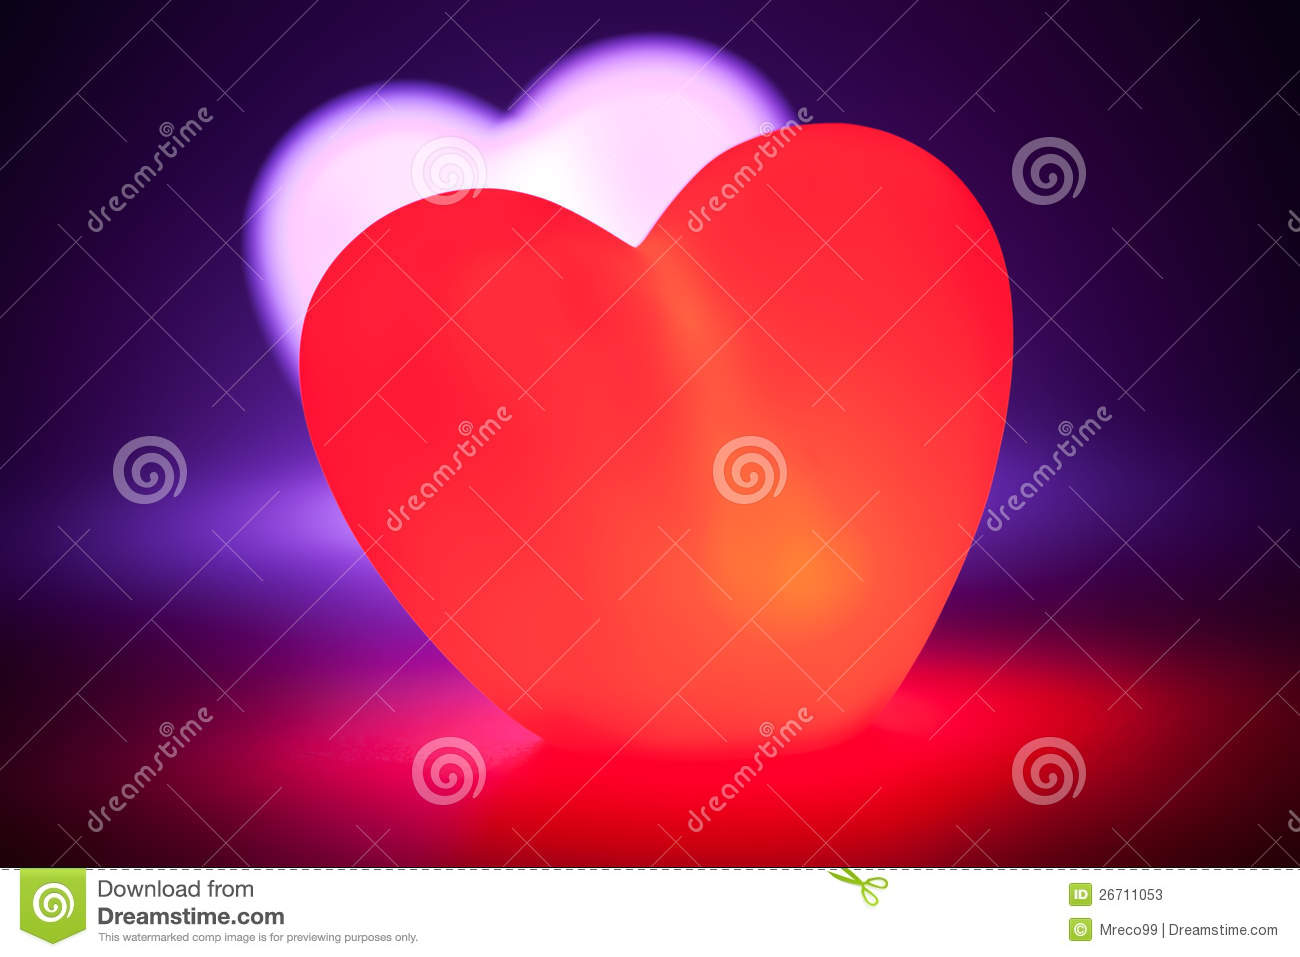 Love heart glowing red with heart behind